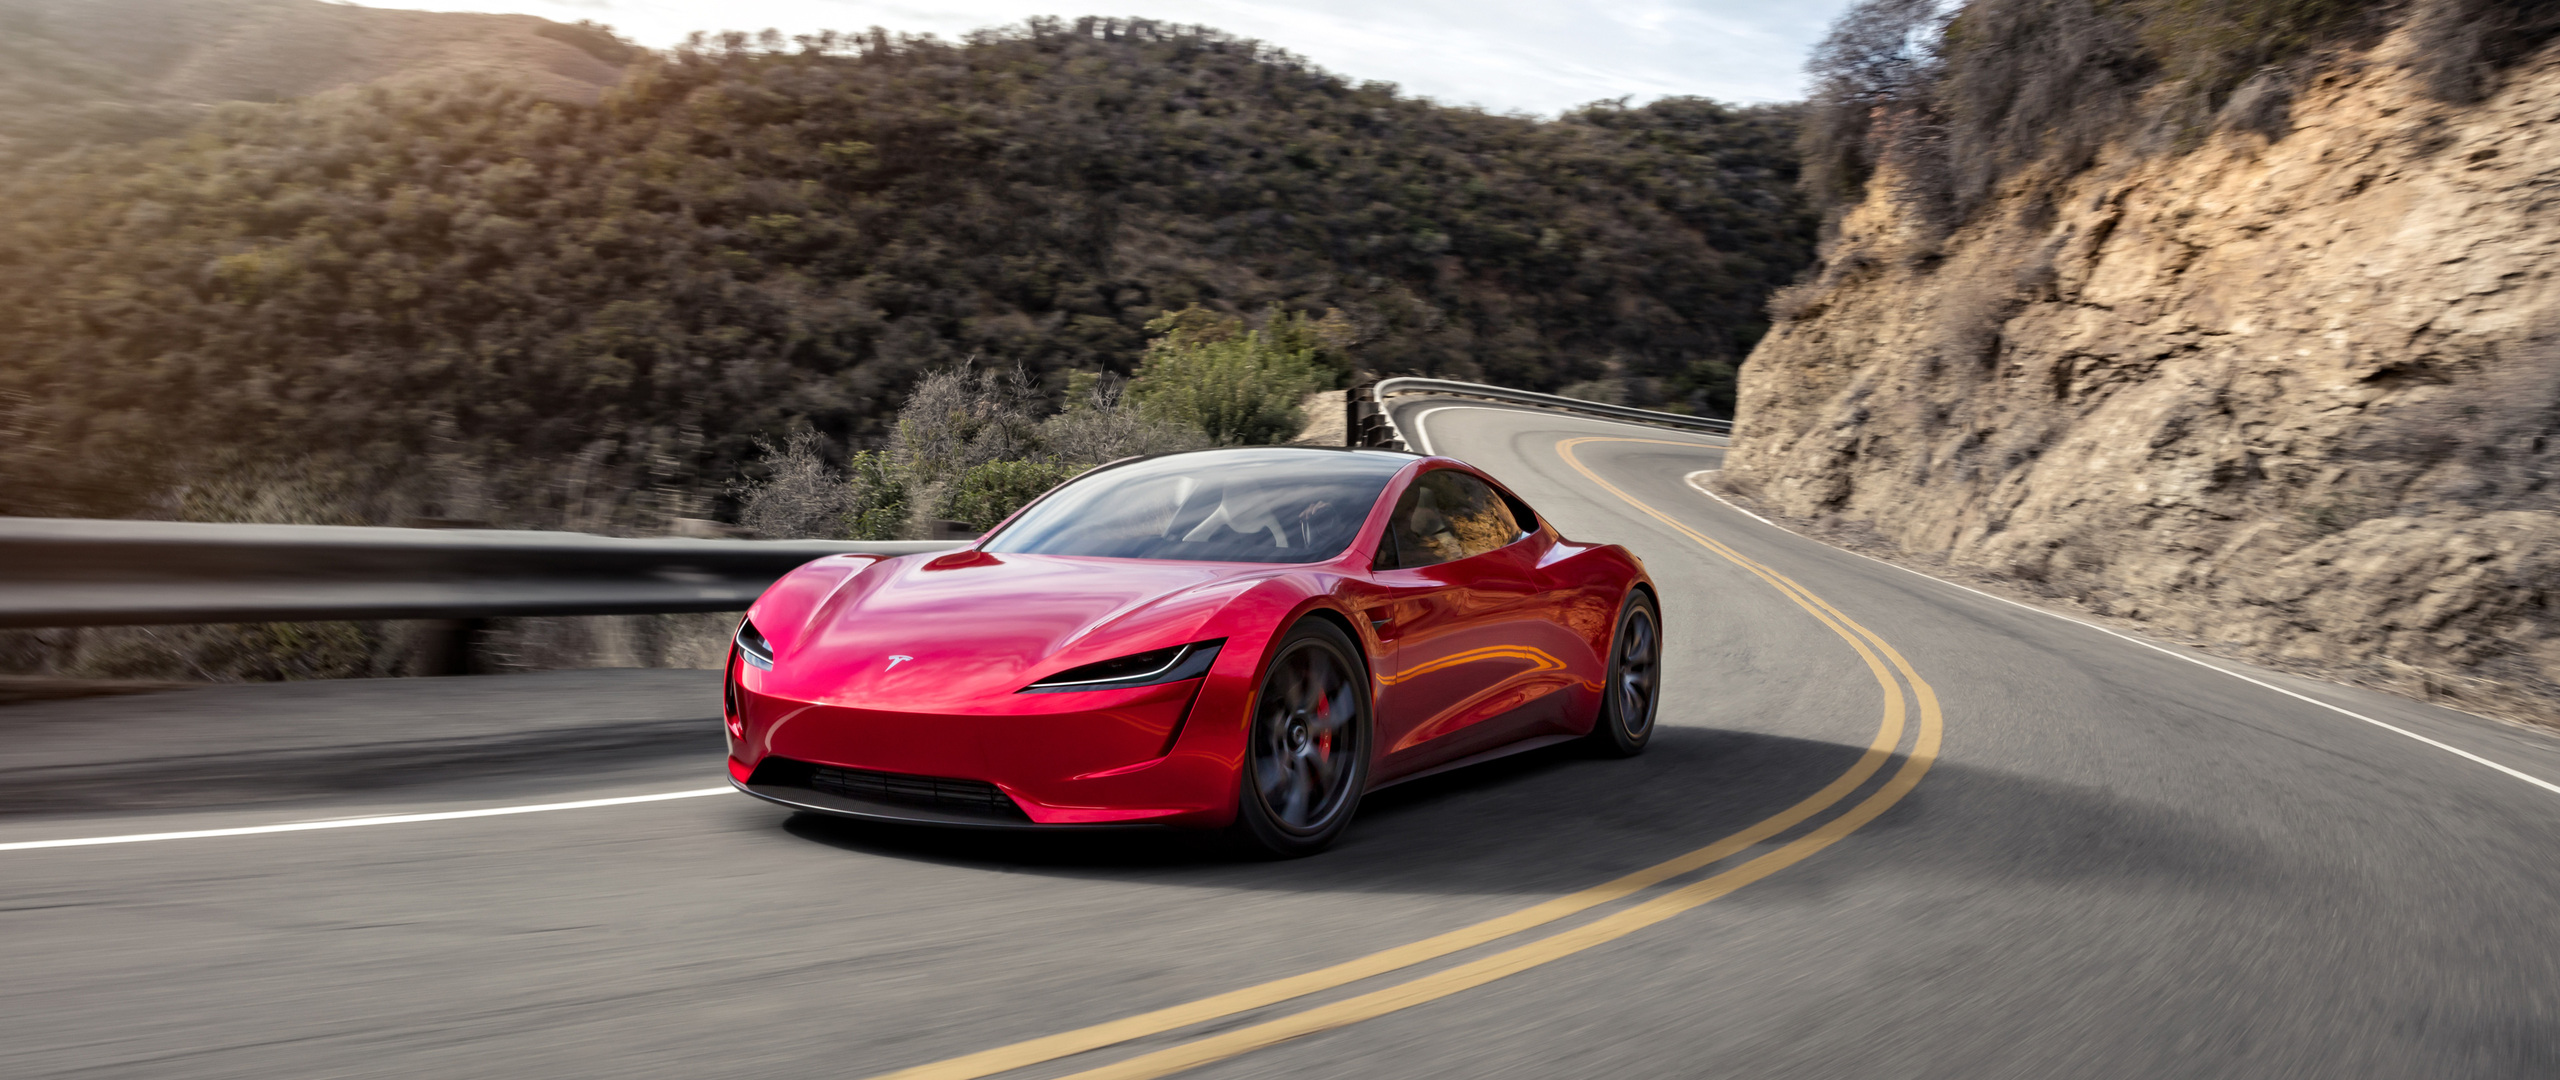 2560x1080 Tesla Roadster Fastest Electric Car 2560x1080